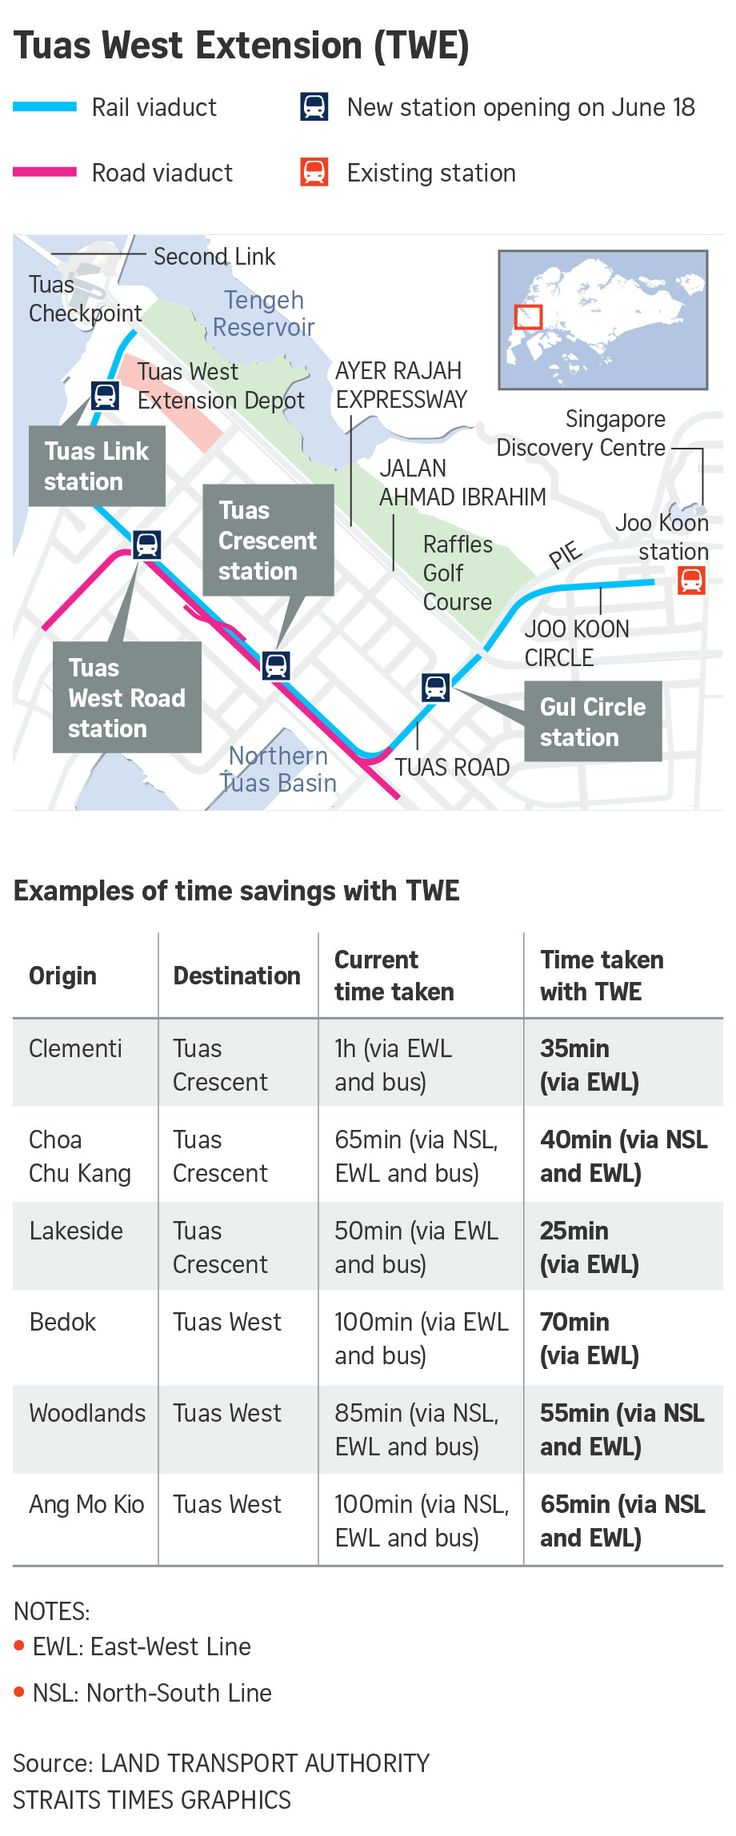 4 MRT stations on Tuas West Extension to open on June 18, Transport News & Top Stories - The Straits Times